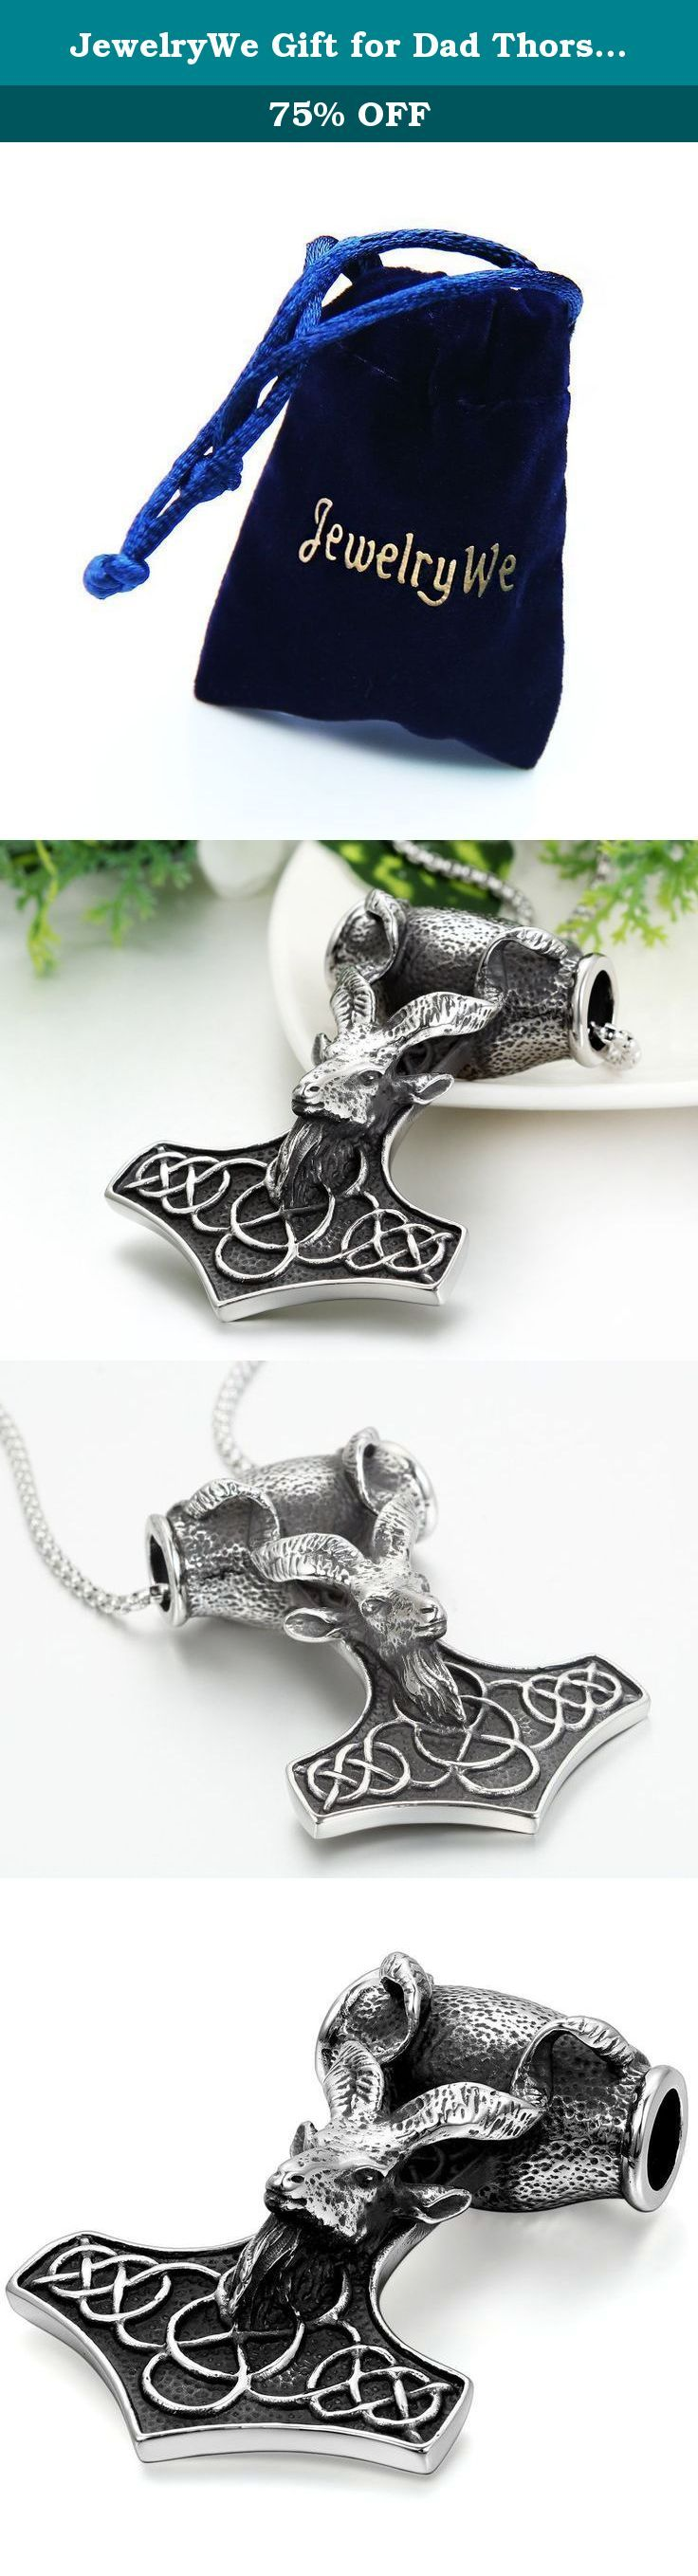 JewelryWe Gift for Dad Thors Mjolnir Hammer Stainless Steel Mens Pendant Necklace 22 Inch, Black Silver. Why choose Stainless Steel Jewelry? Stainless Steel jewelry does not tarnish and oxidize, which can last longer than other jewelries. It is able to endure a lot of wear and tear. And it is amazingly hypoallergenic. Such advantages make it a more popular accessory. High quality stainless steel has high resistance to rust, corrosion and tarnishing, which requires minimal maintenance....